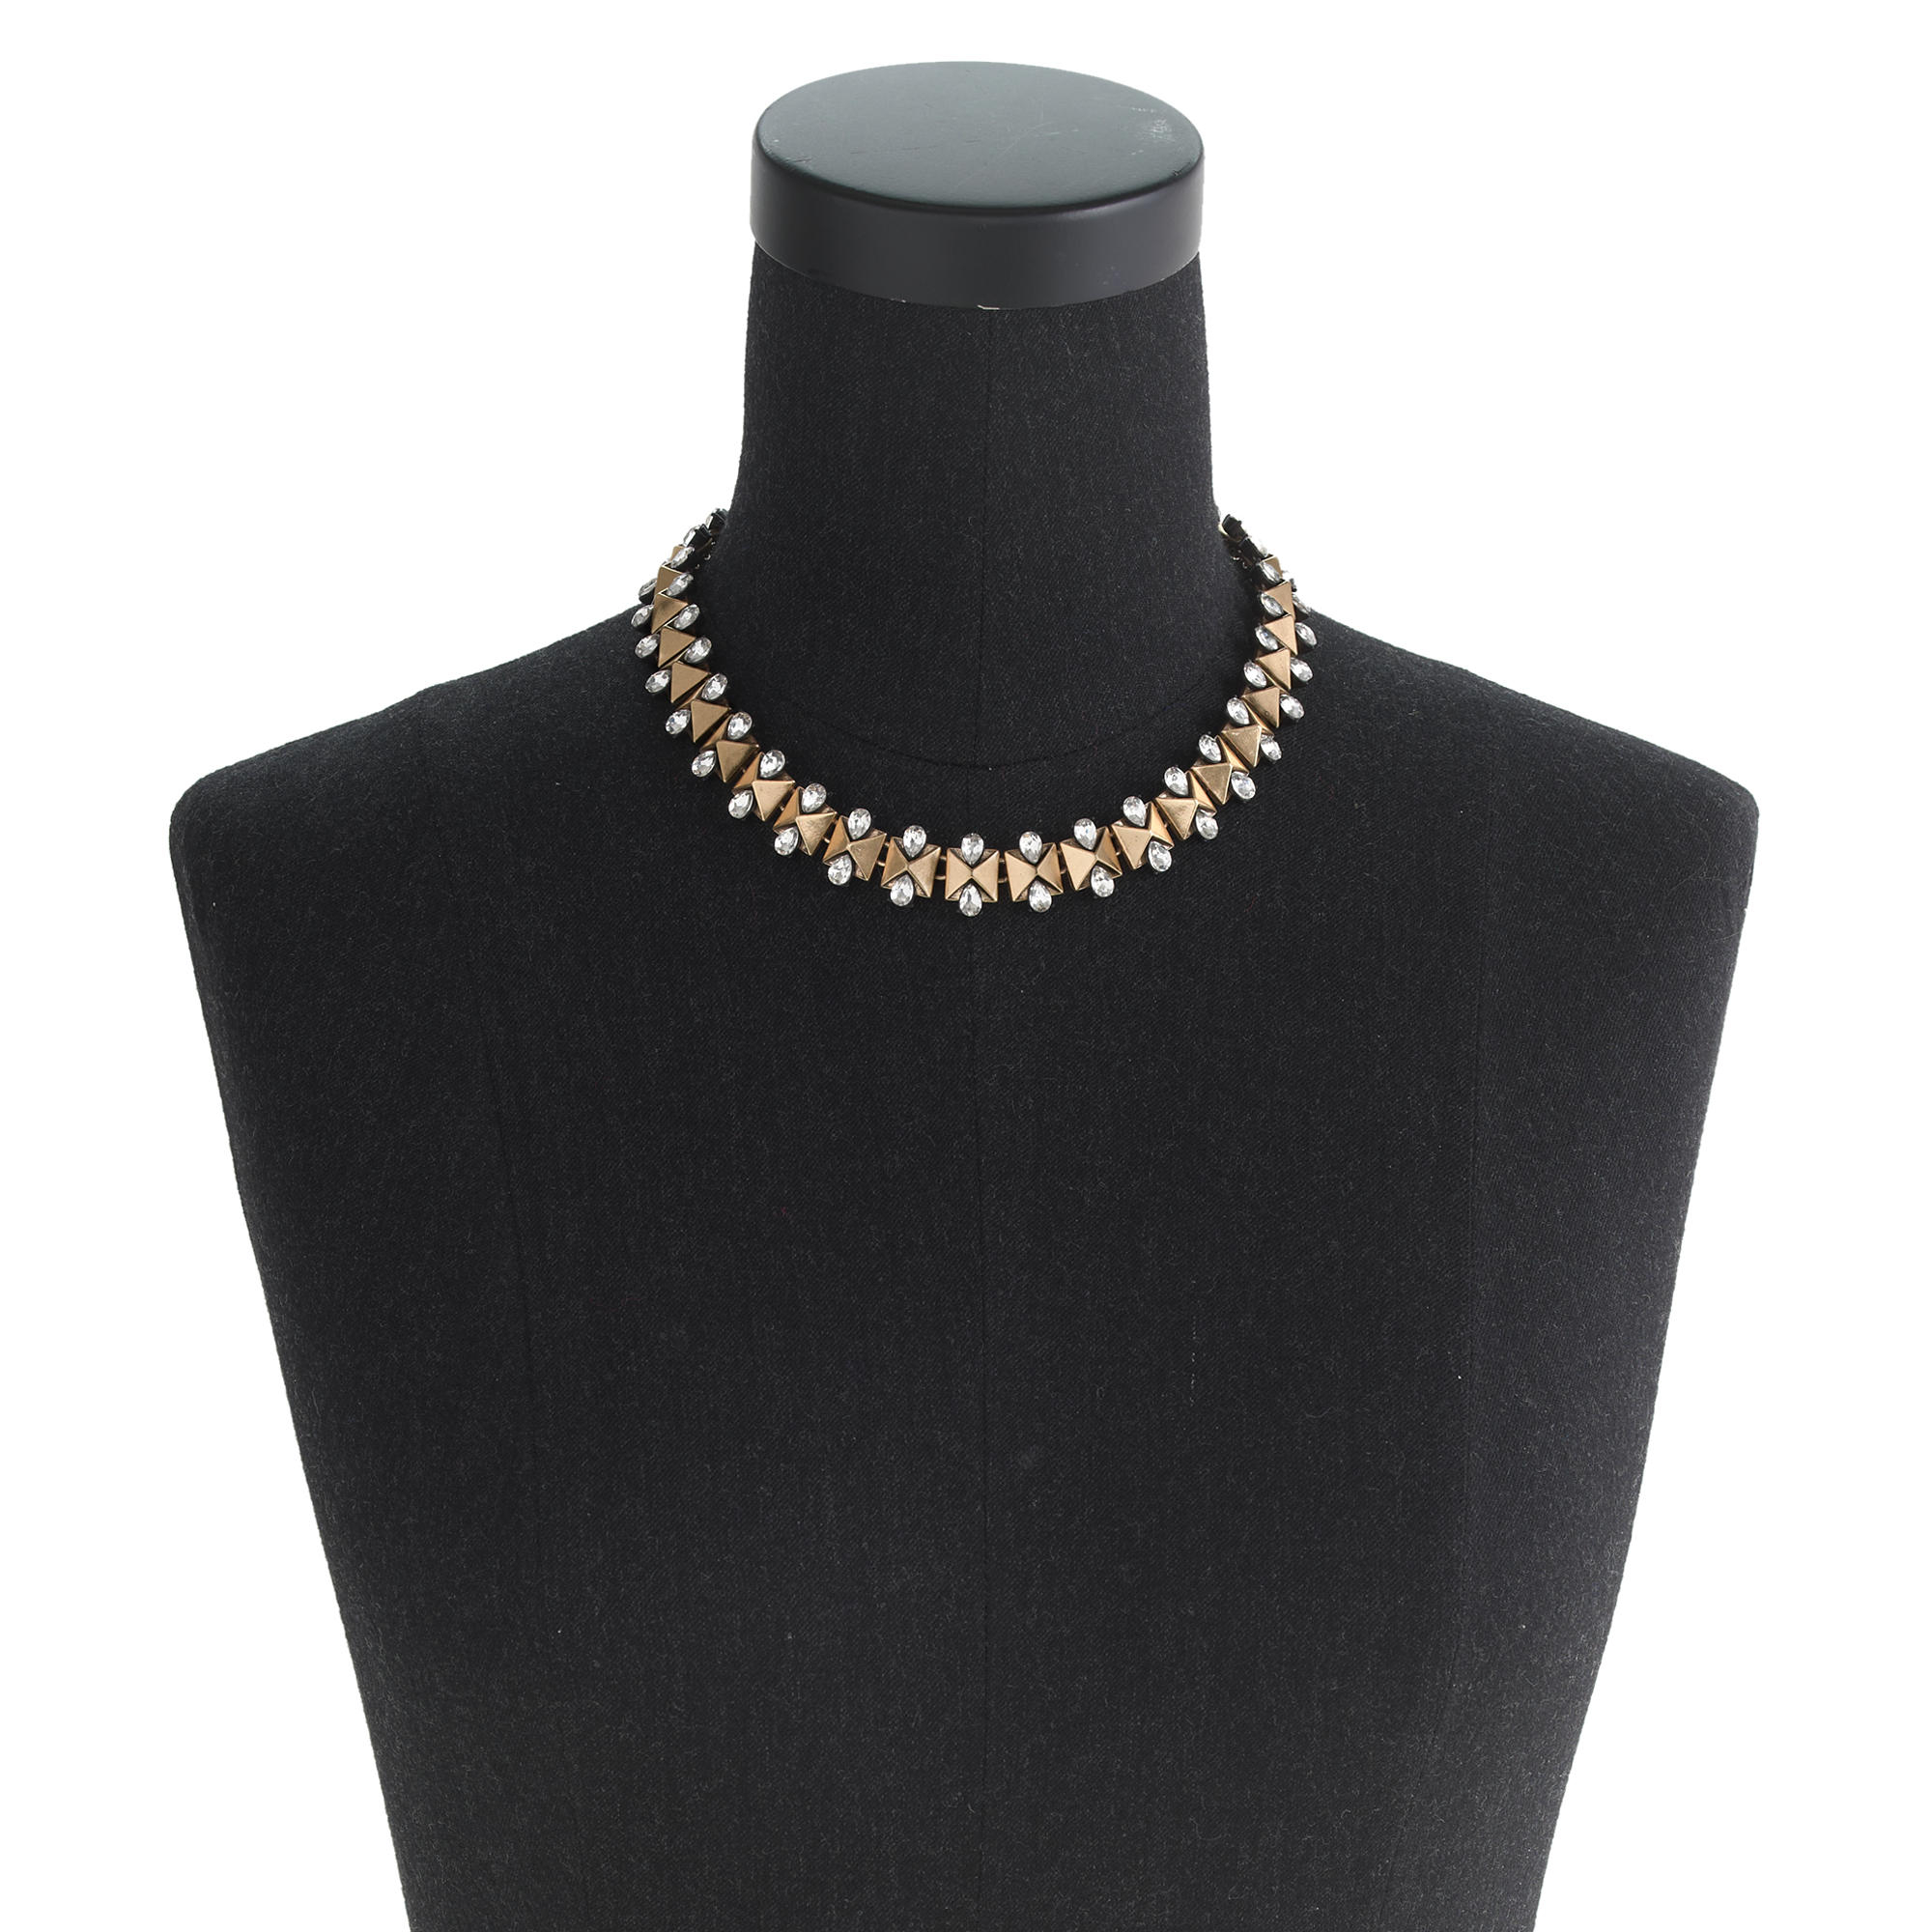 J.Crew Crystal Bow-tie Necklace in Antique Gold (Metallic)